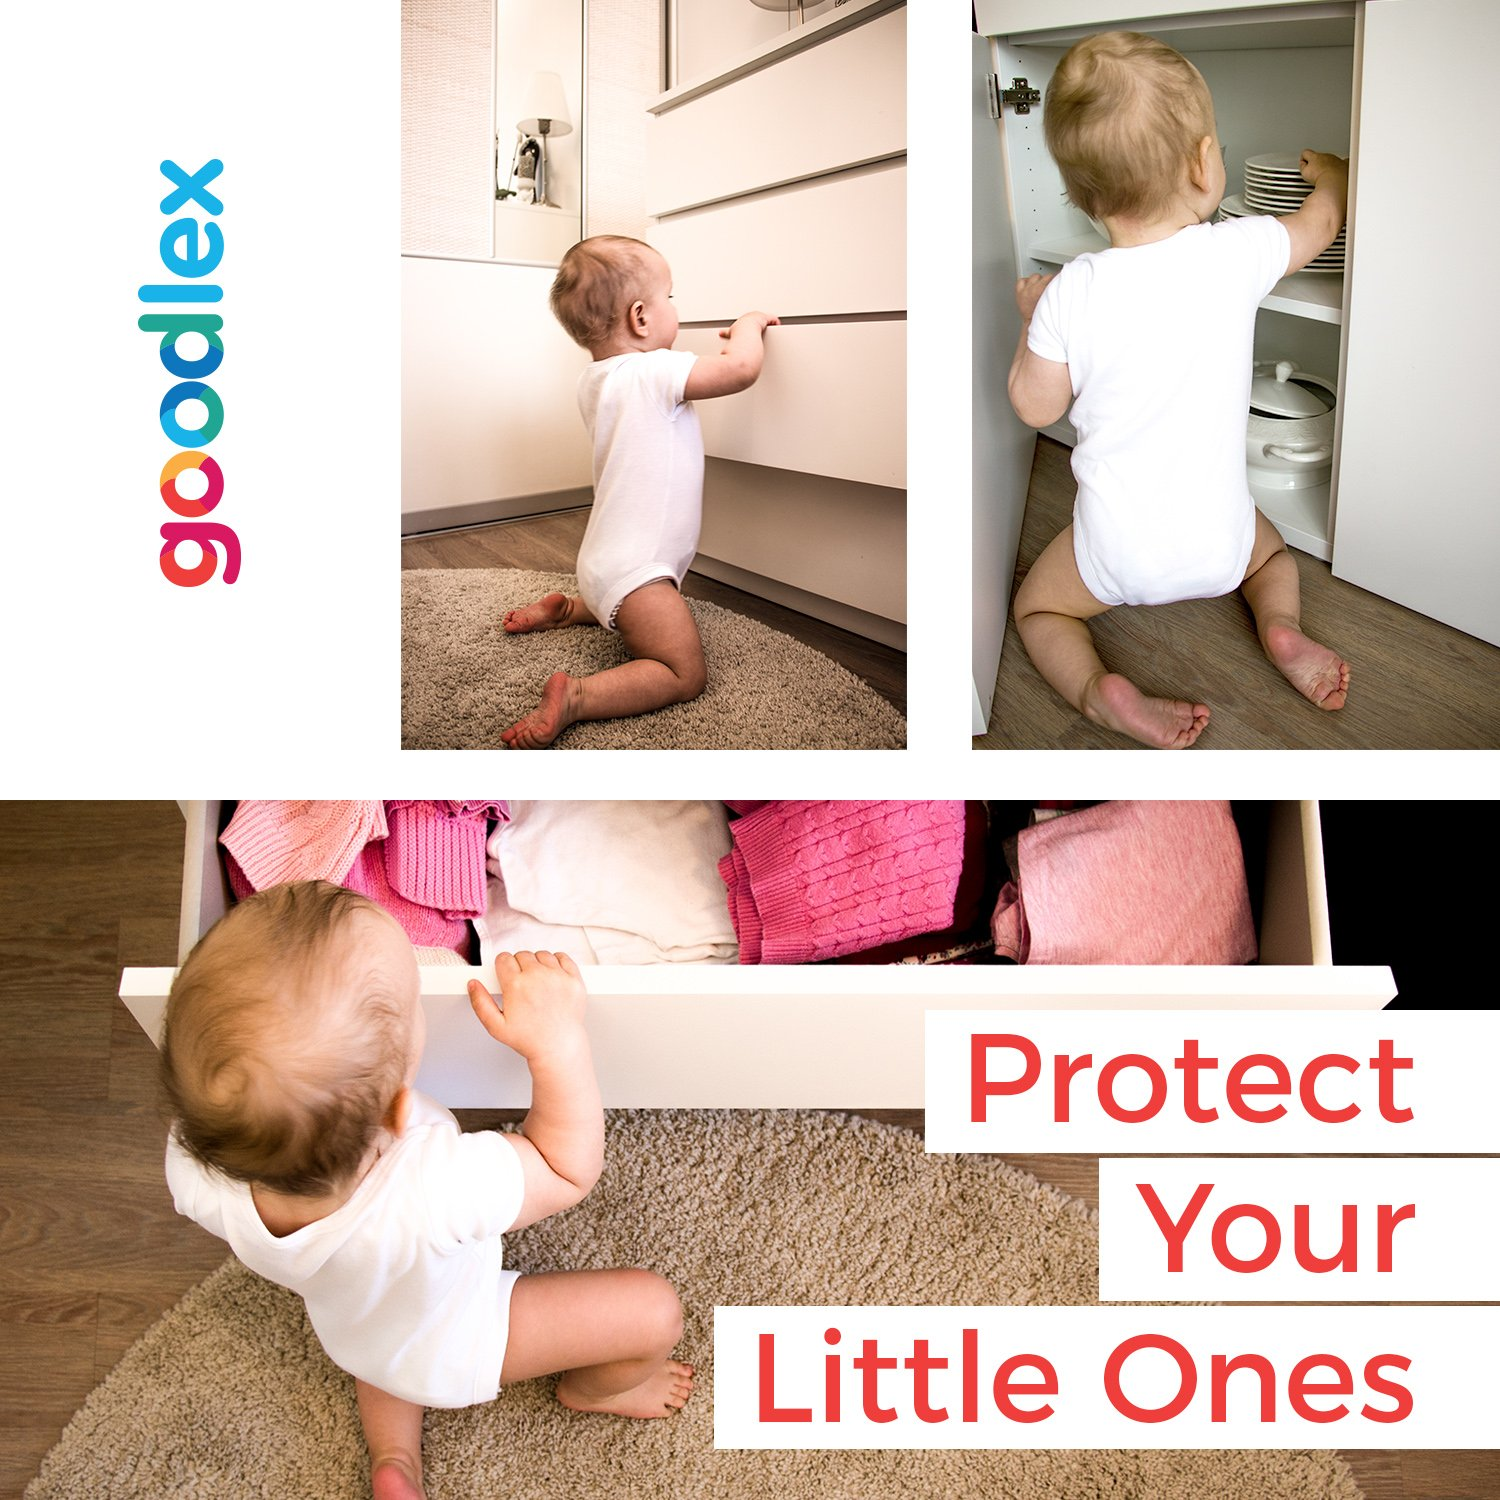 Self-Adhesive 3M Tape Easy Installation 1 Key Pack Drawers /& Cabinets Goodlex Premium Child Magnetic Lock Set Child Safety Locks For Cupboards Requires No Tools /& Drilling 4 Locks